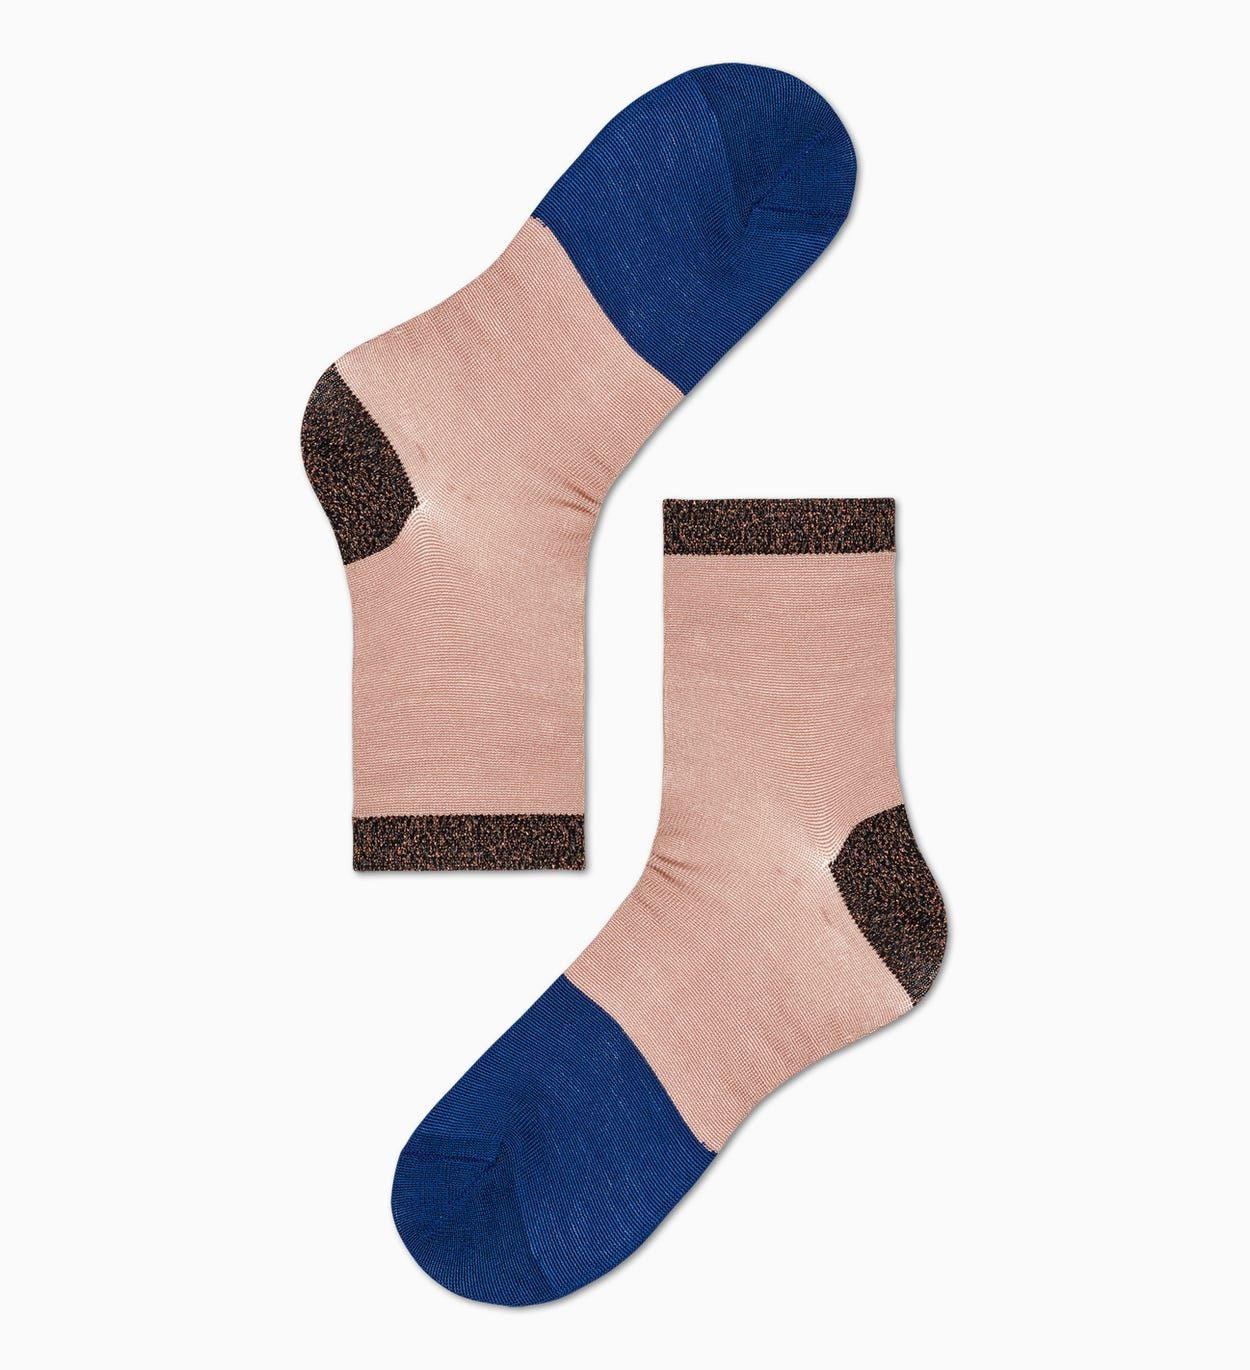 Blaue niedrige Socken: Liza | Hysteria by Happy Socks